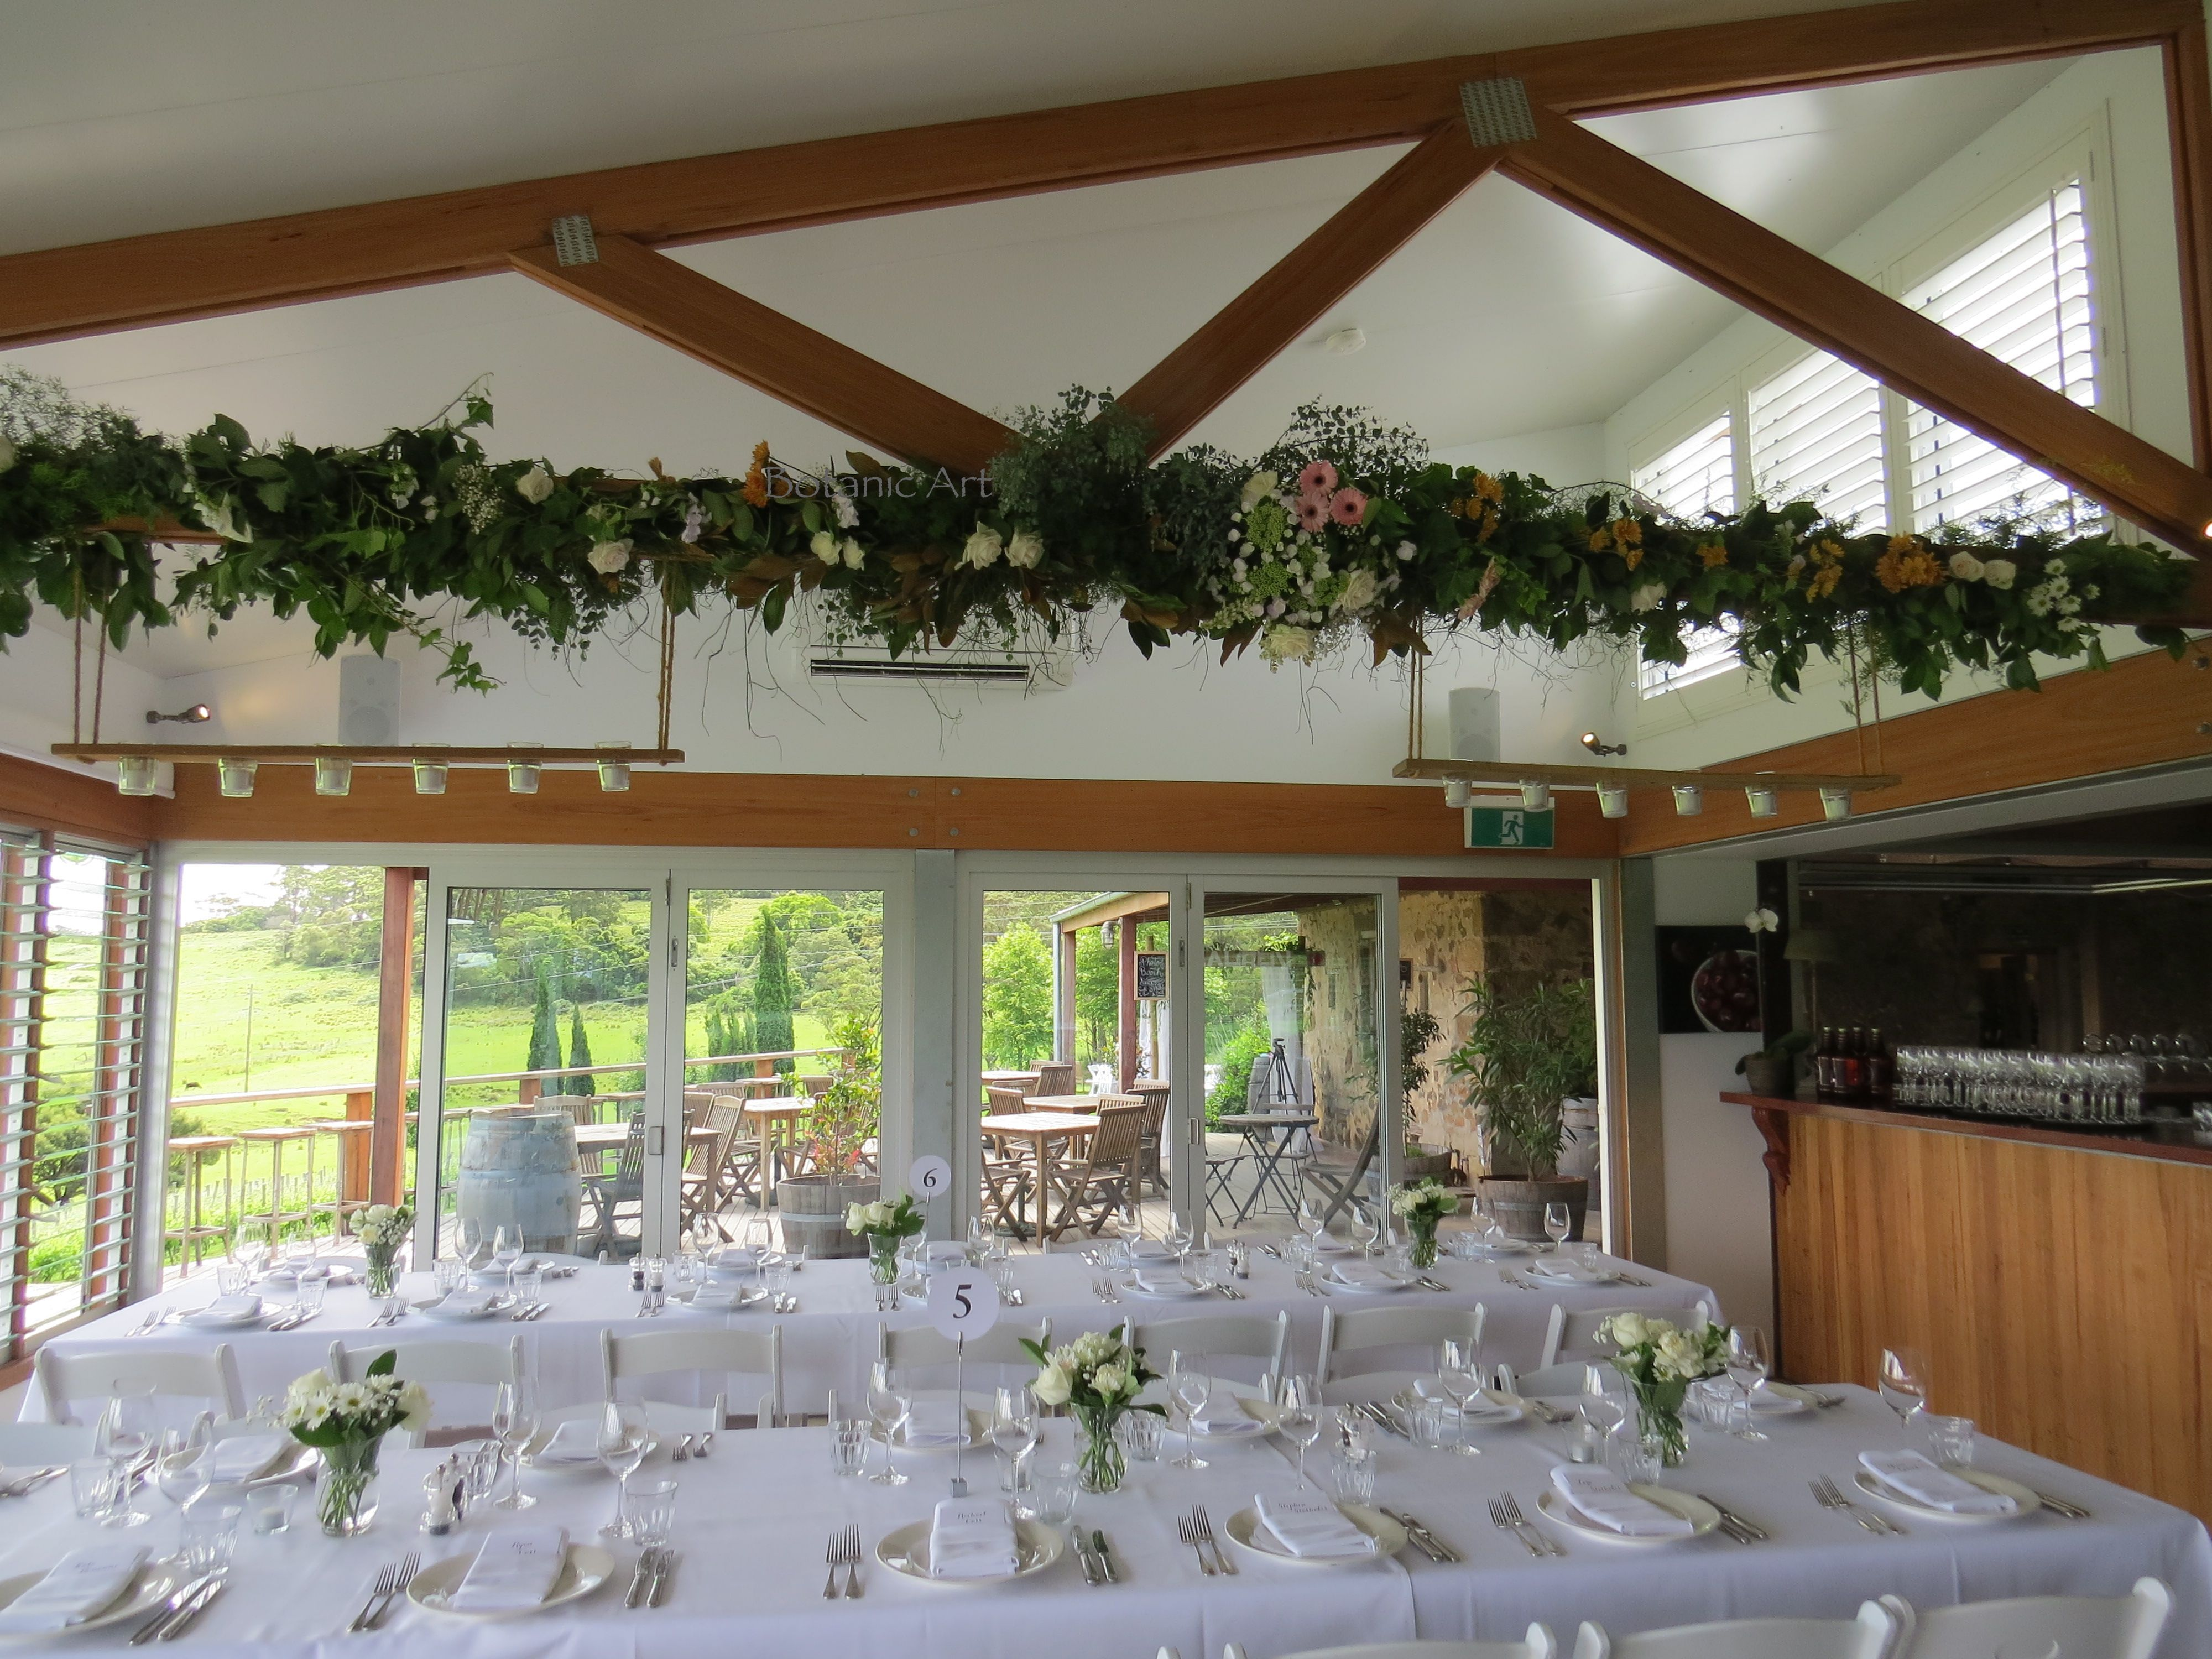 Beam decoration flower garland barn wedding ceiling draping